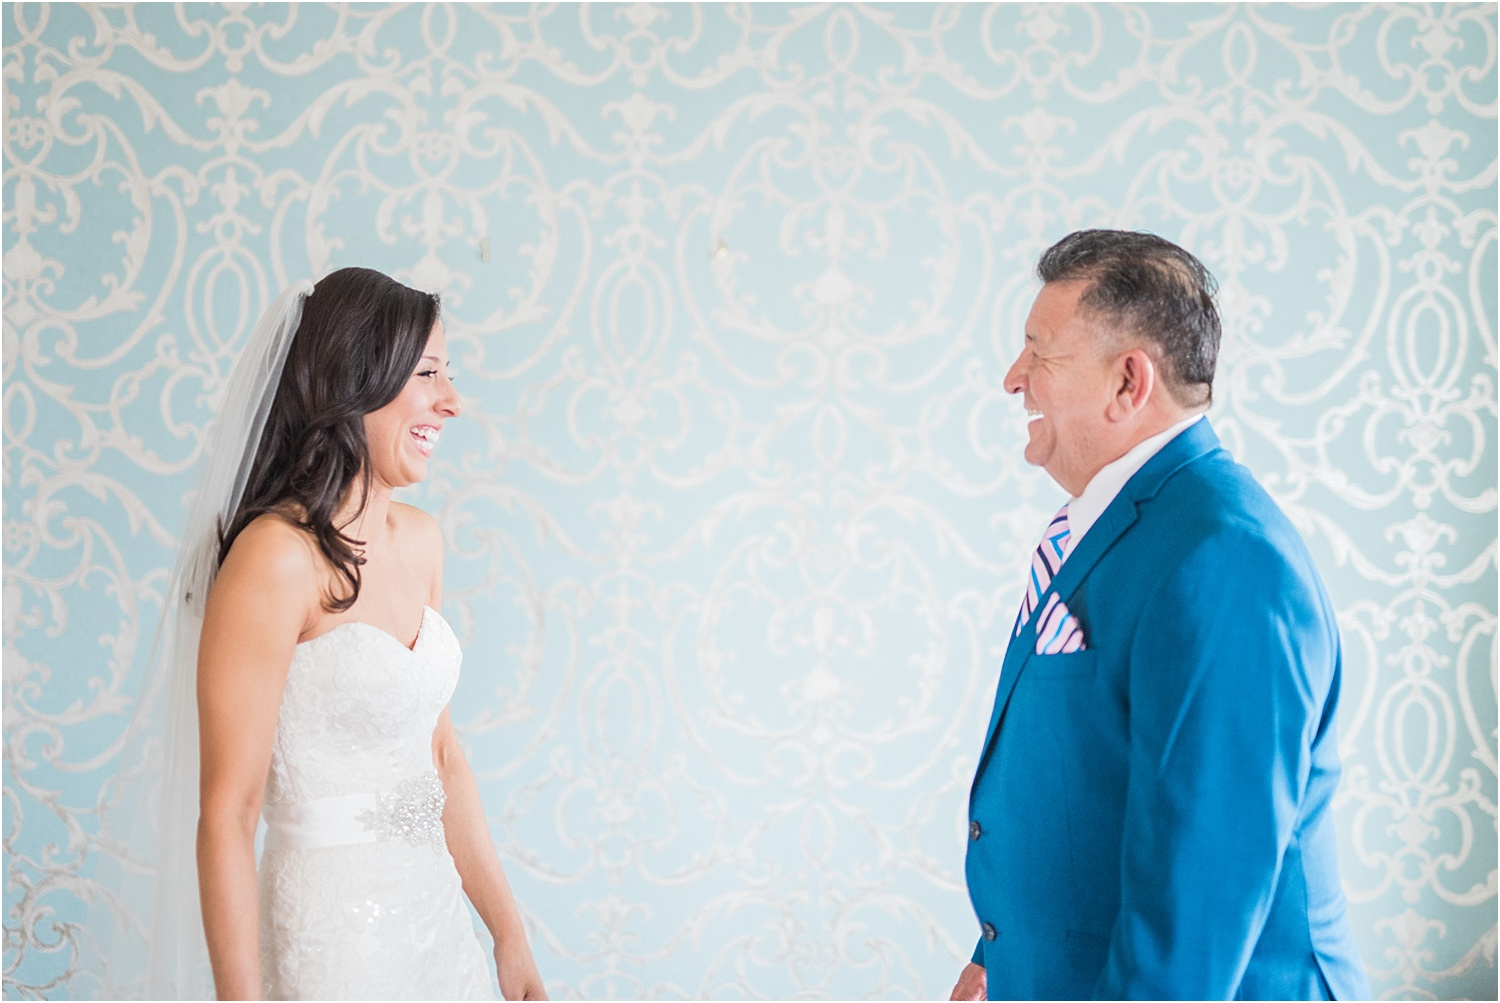 New Jersey wedding Photographer bright natural airy sweet soft wedding Photographer Faves-64.jpg